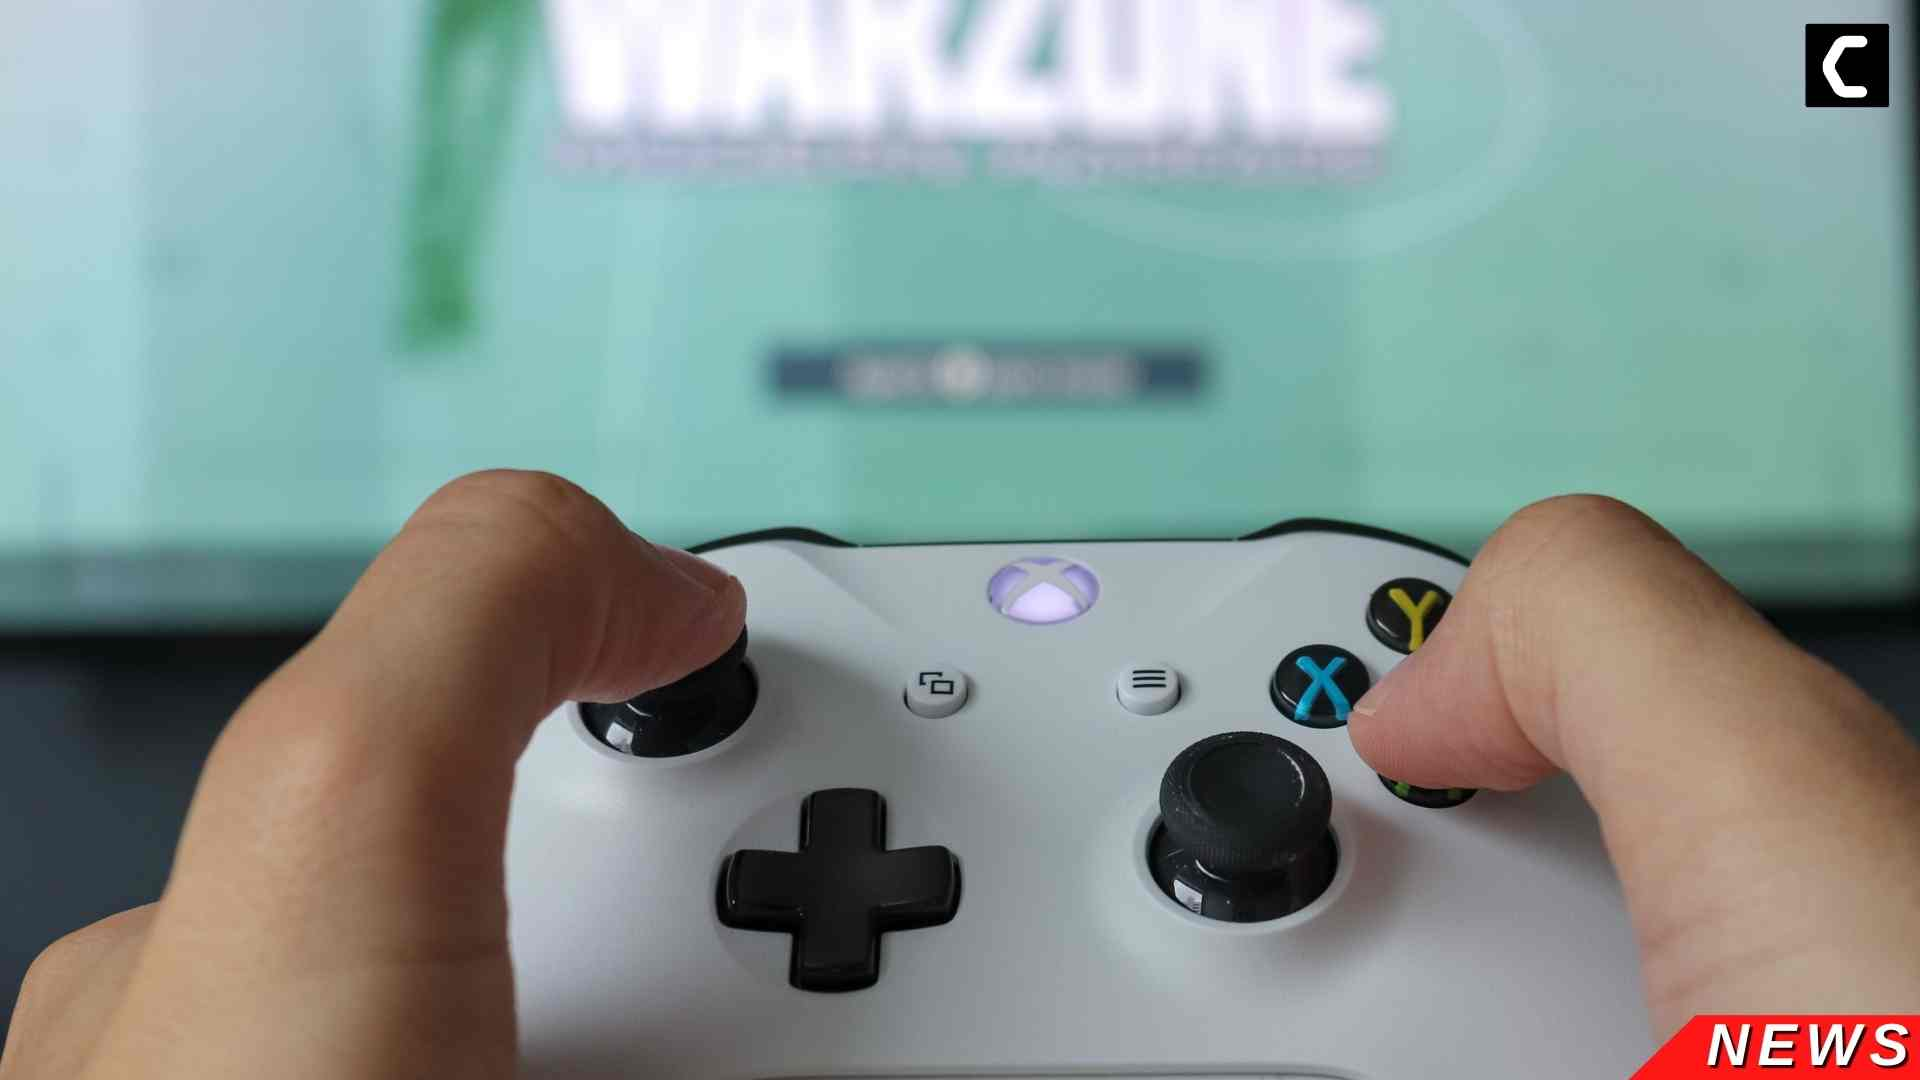 New Software Update brings a huge improvement to your Xbox Controller